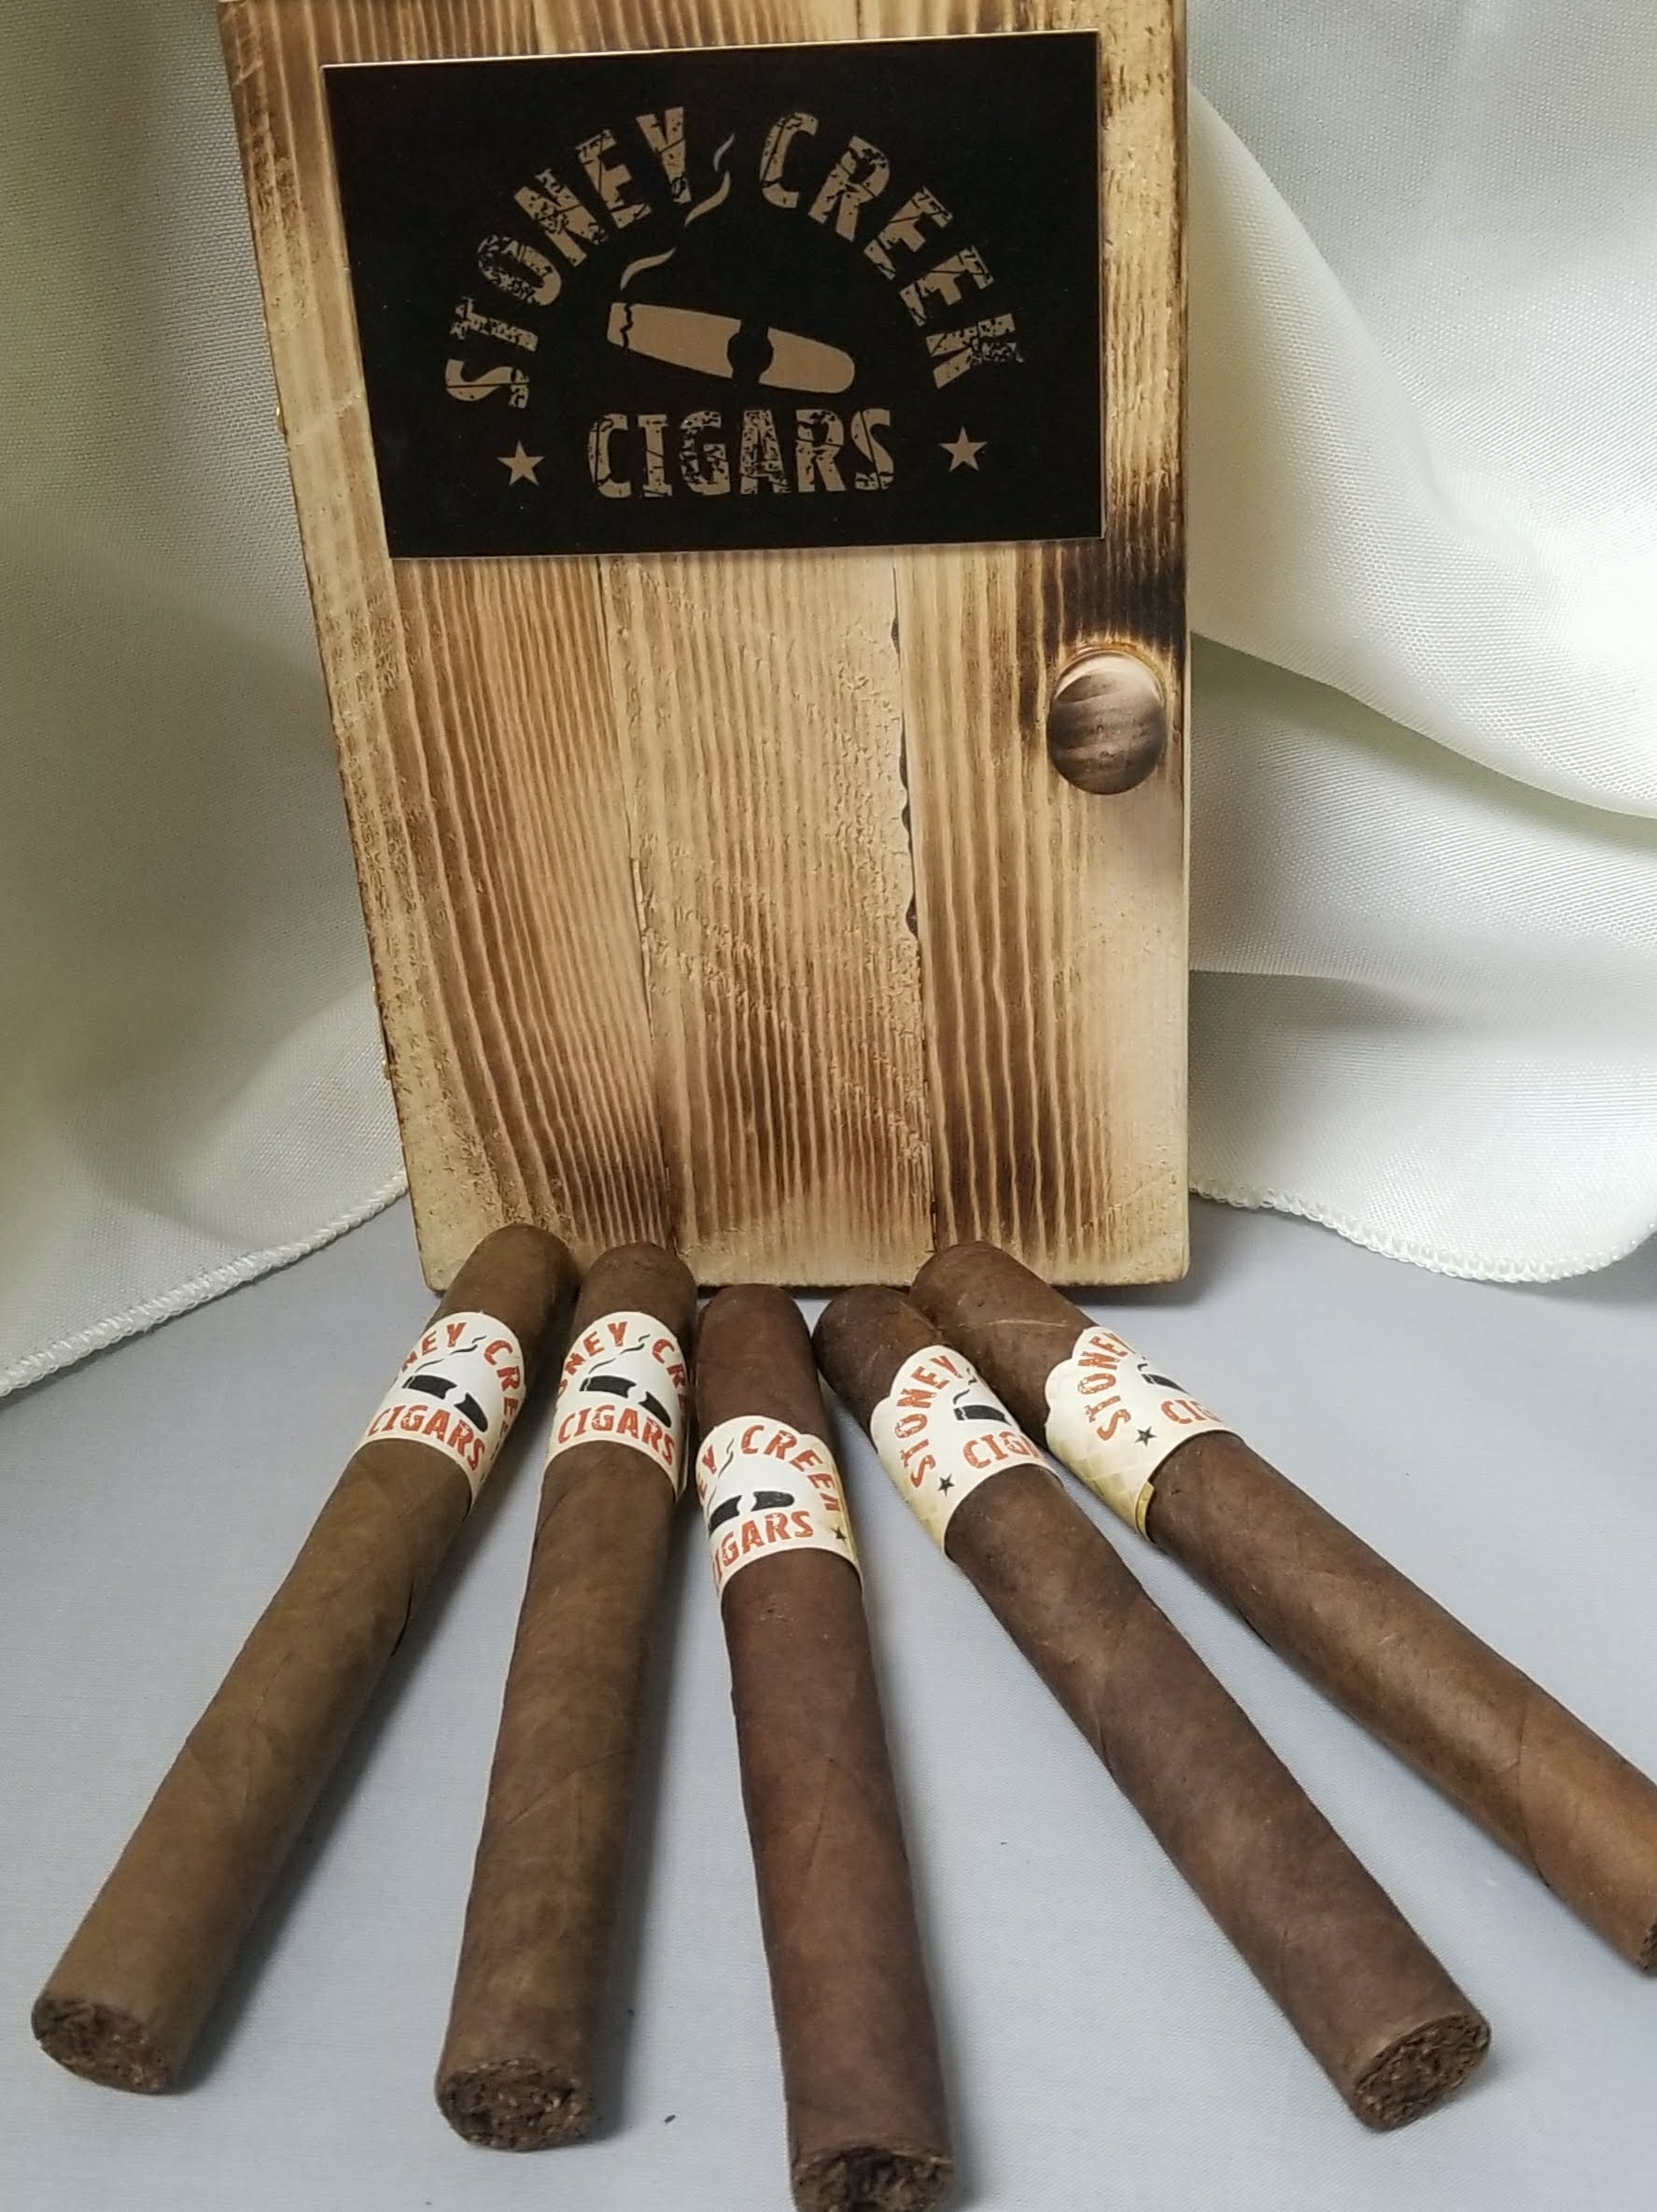 Bourbon cigar - 5 pack